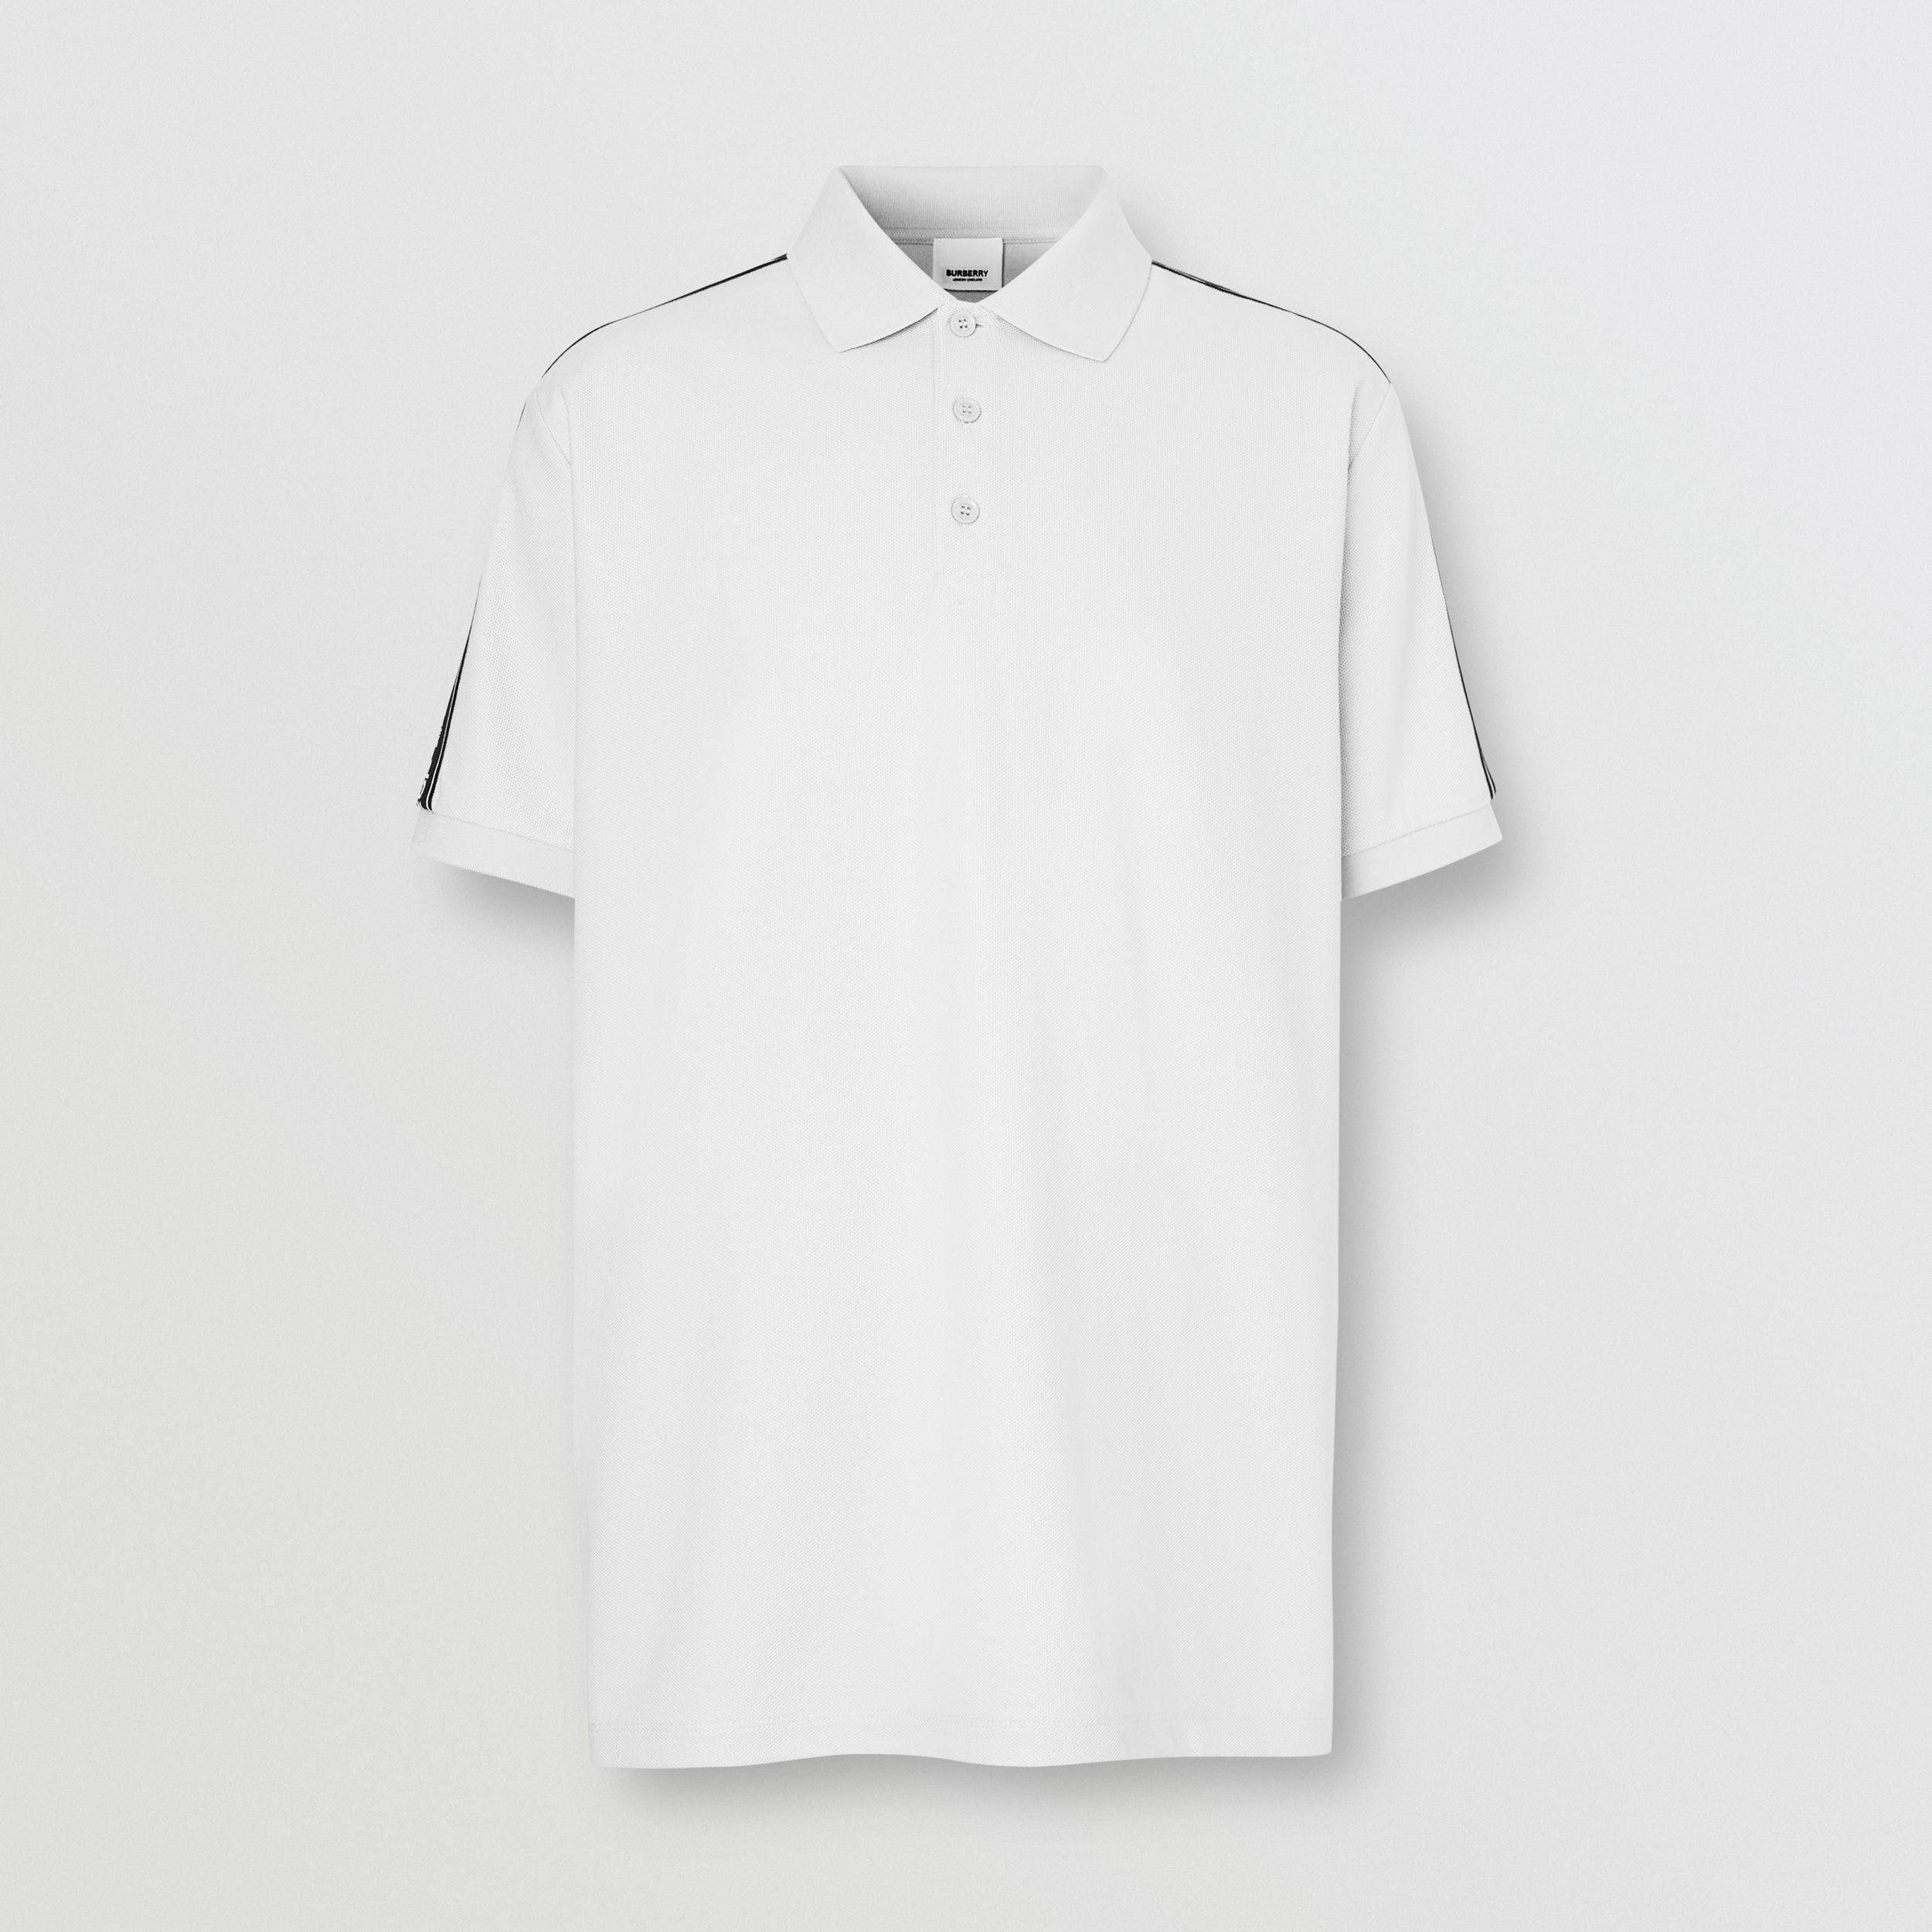 Logo Tape Cotton Piqué Polo Shirt in White - Men | Burberry - 4